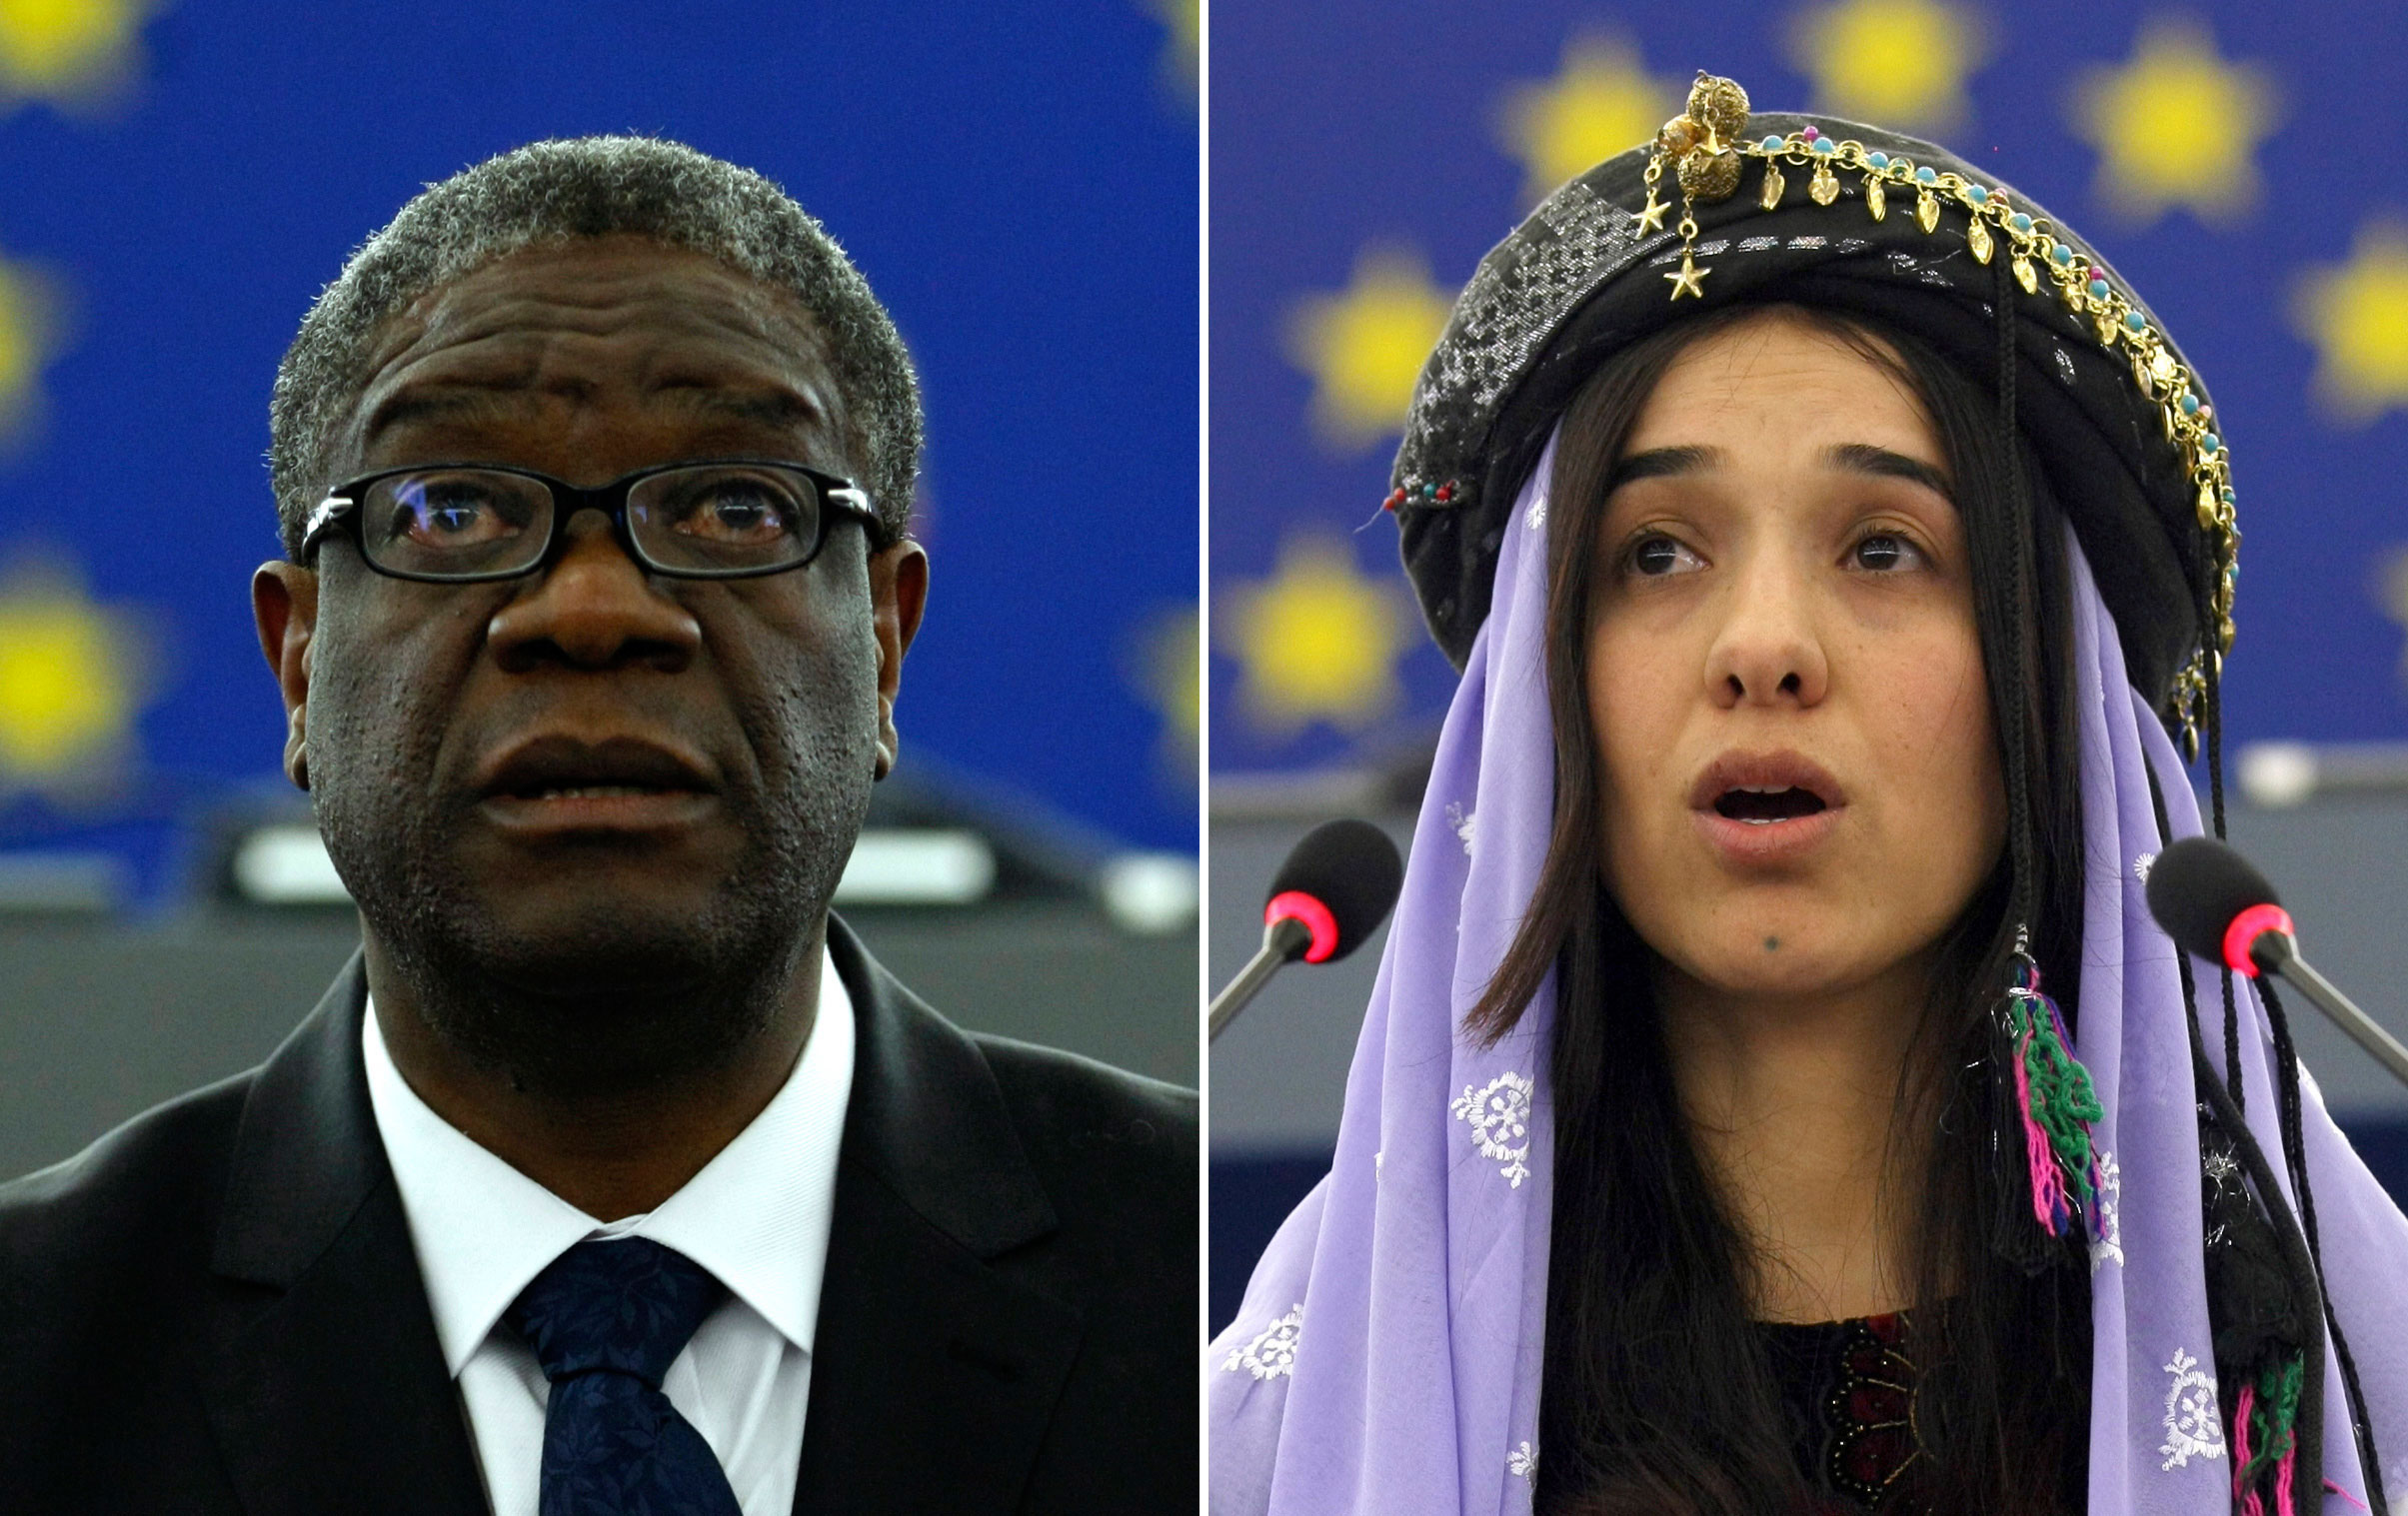 Nobel's Mukwege hears news in surgery as wild cheers erupt